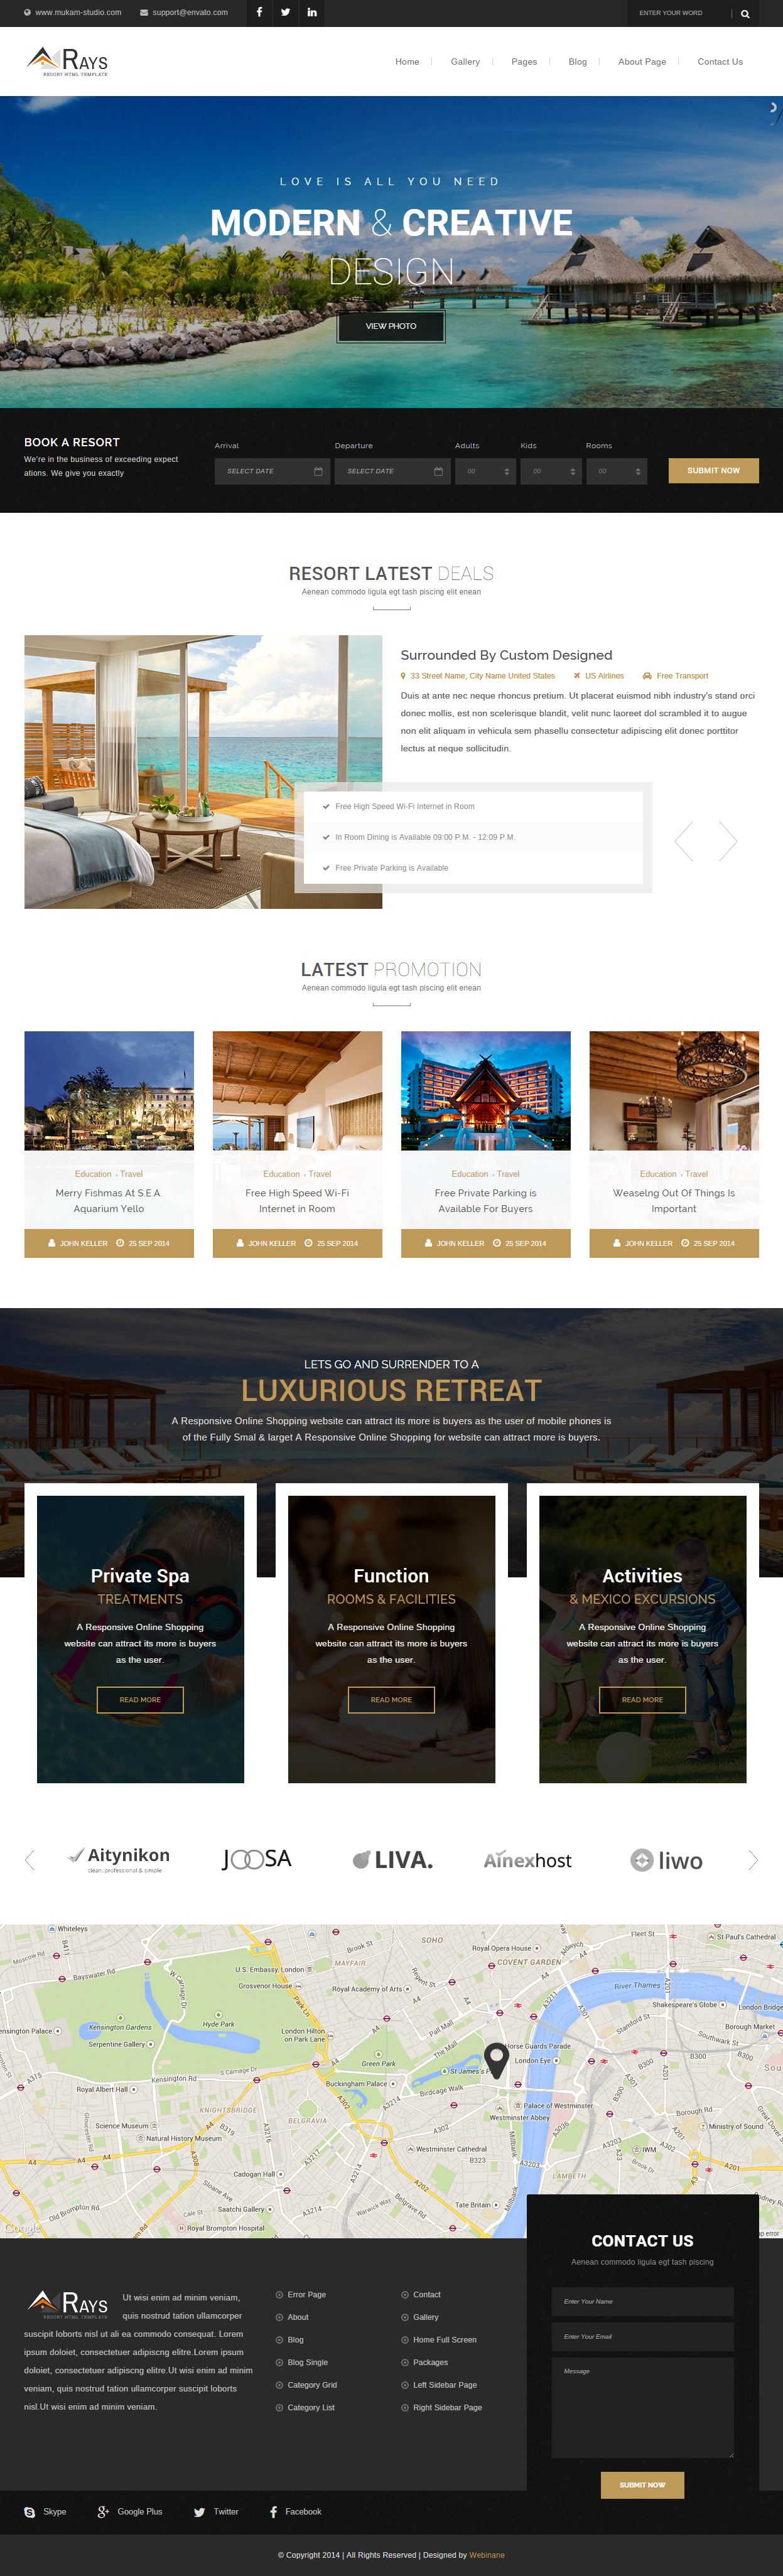 5 Best Responsive Html5 Templates For Resorts In 2015 Responsive